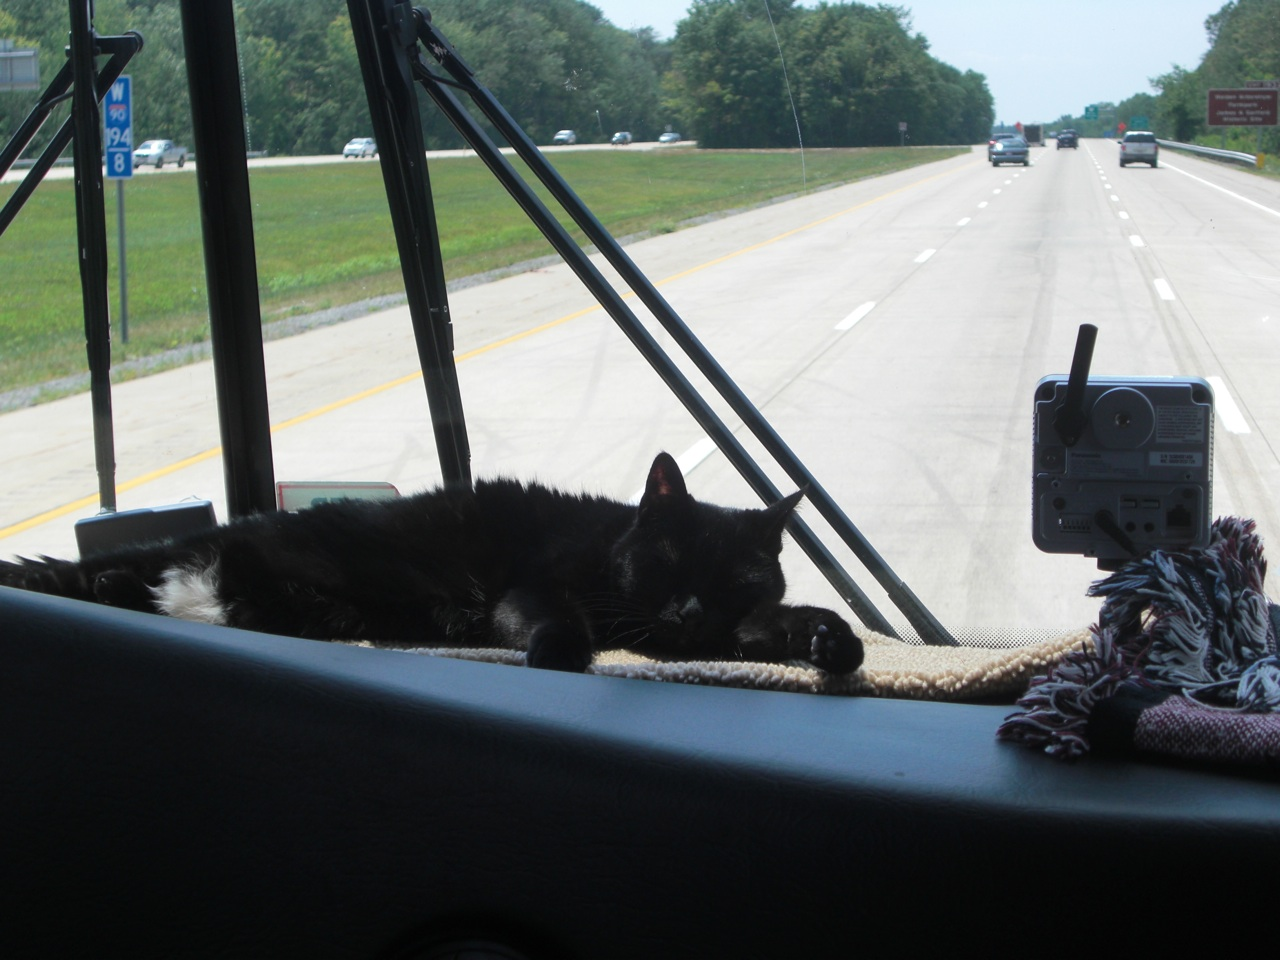 Angel Sleeping On The Dash While We Are Driving Down The Road